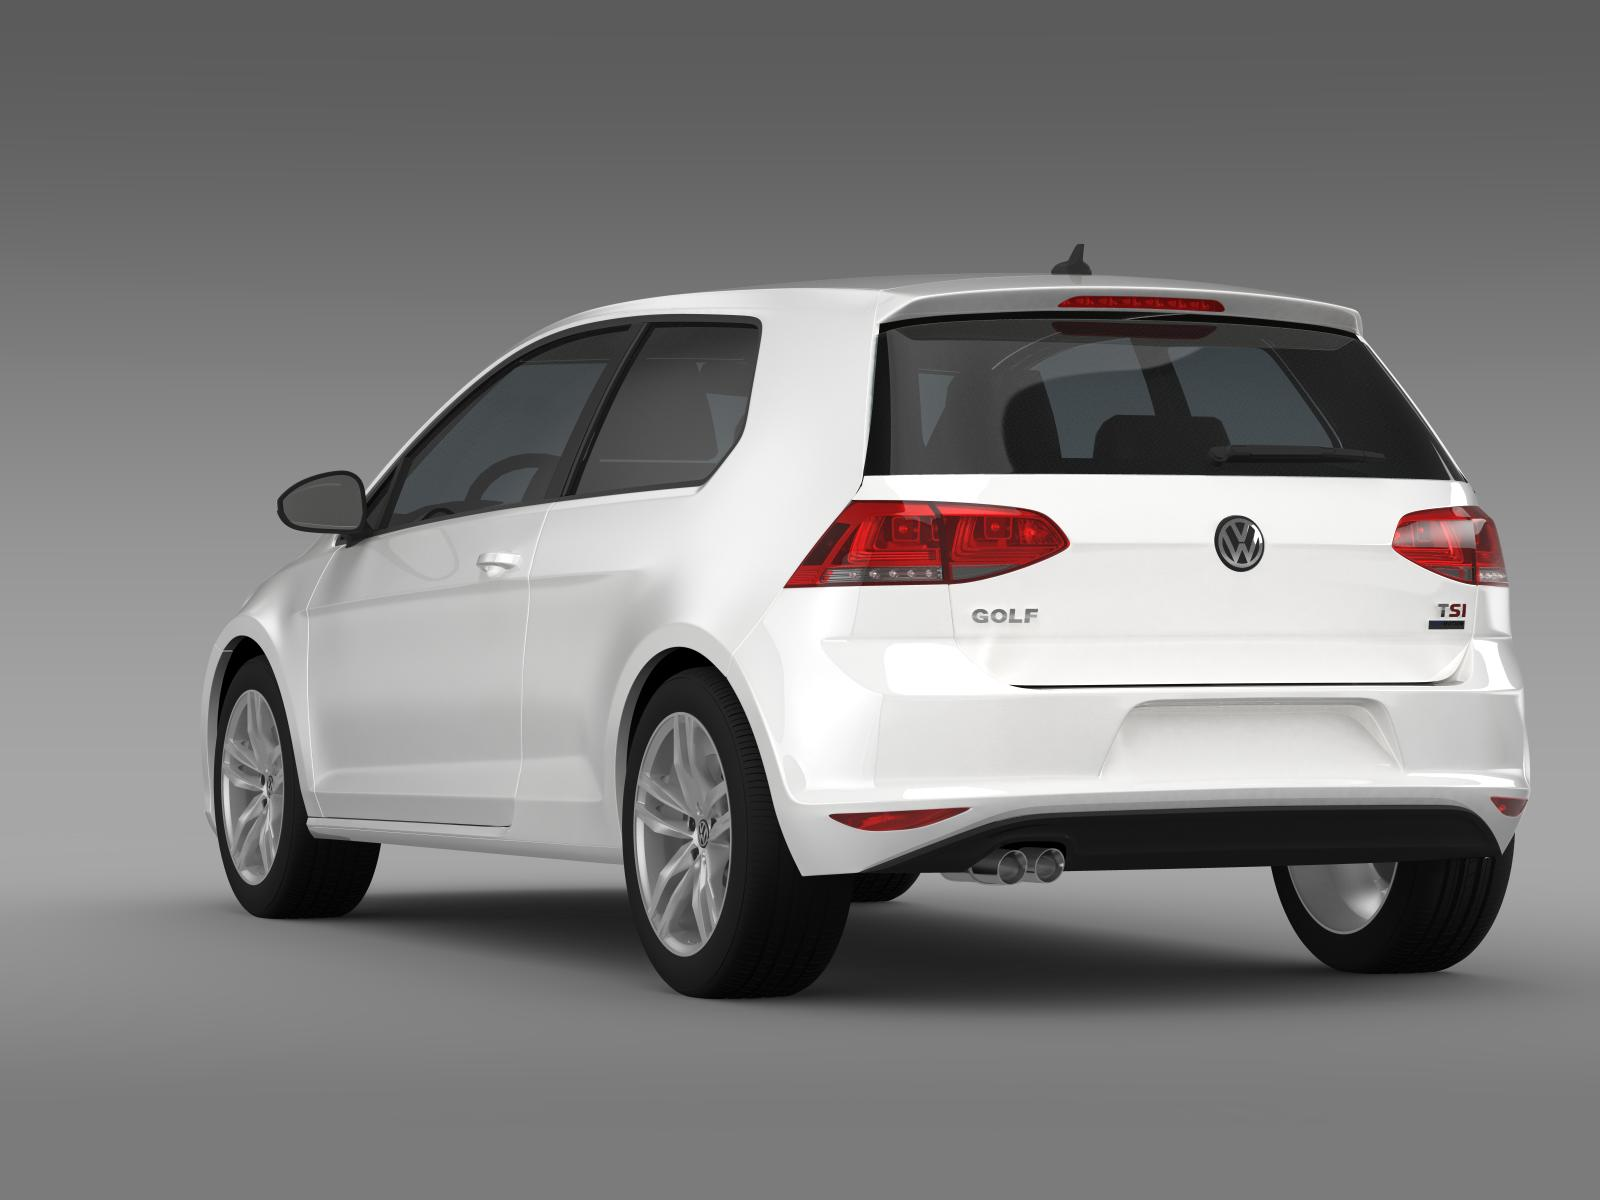 vw golf tsi bluemotion 3door 2015 3d model. Black Bedroom Furniture Sets. Home Design Ideas